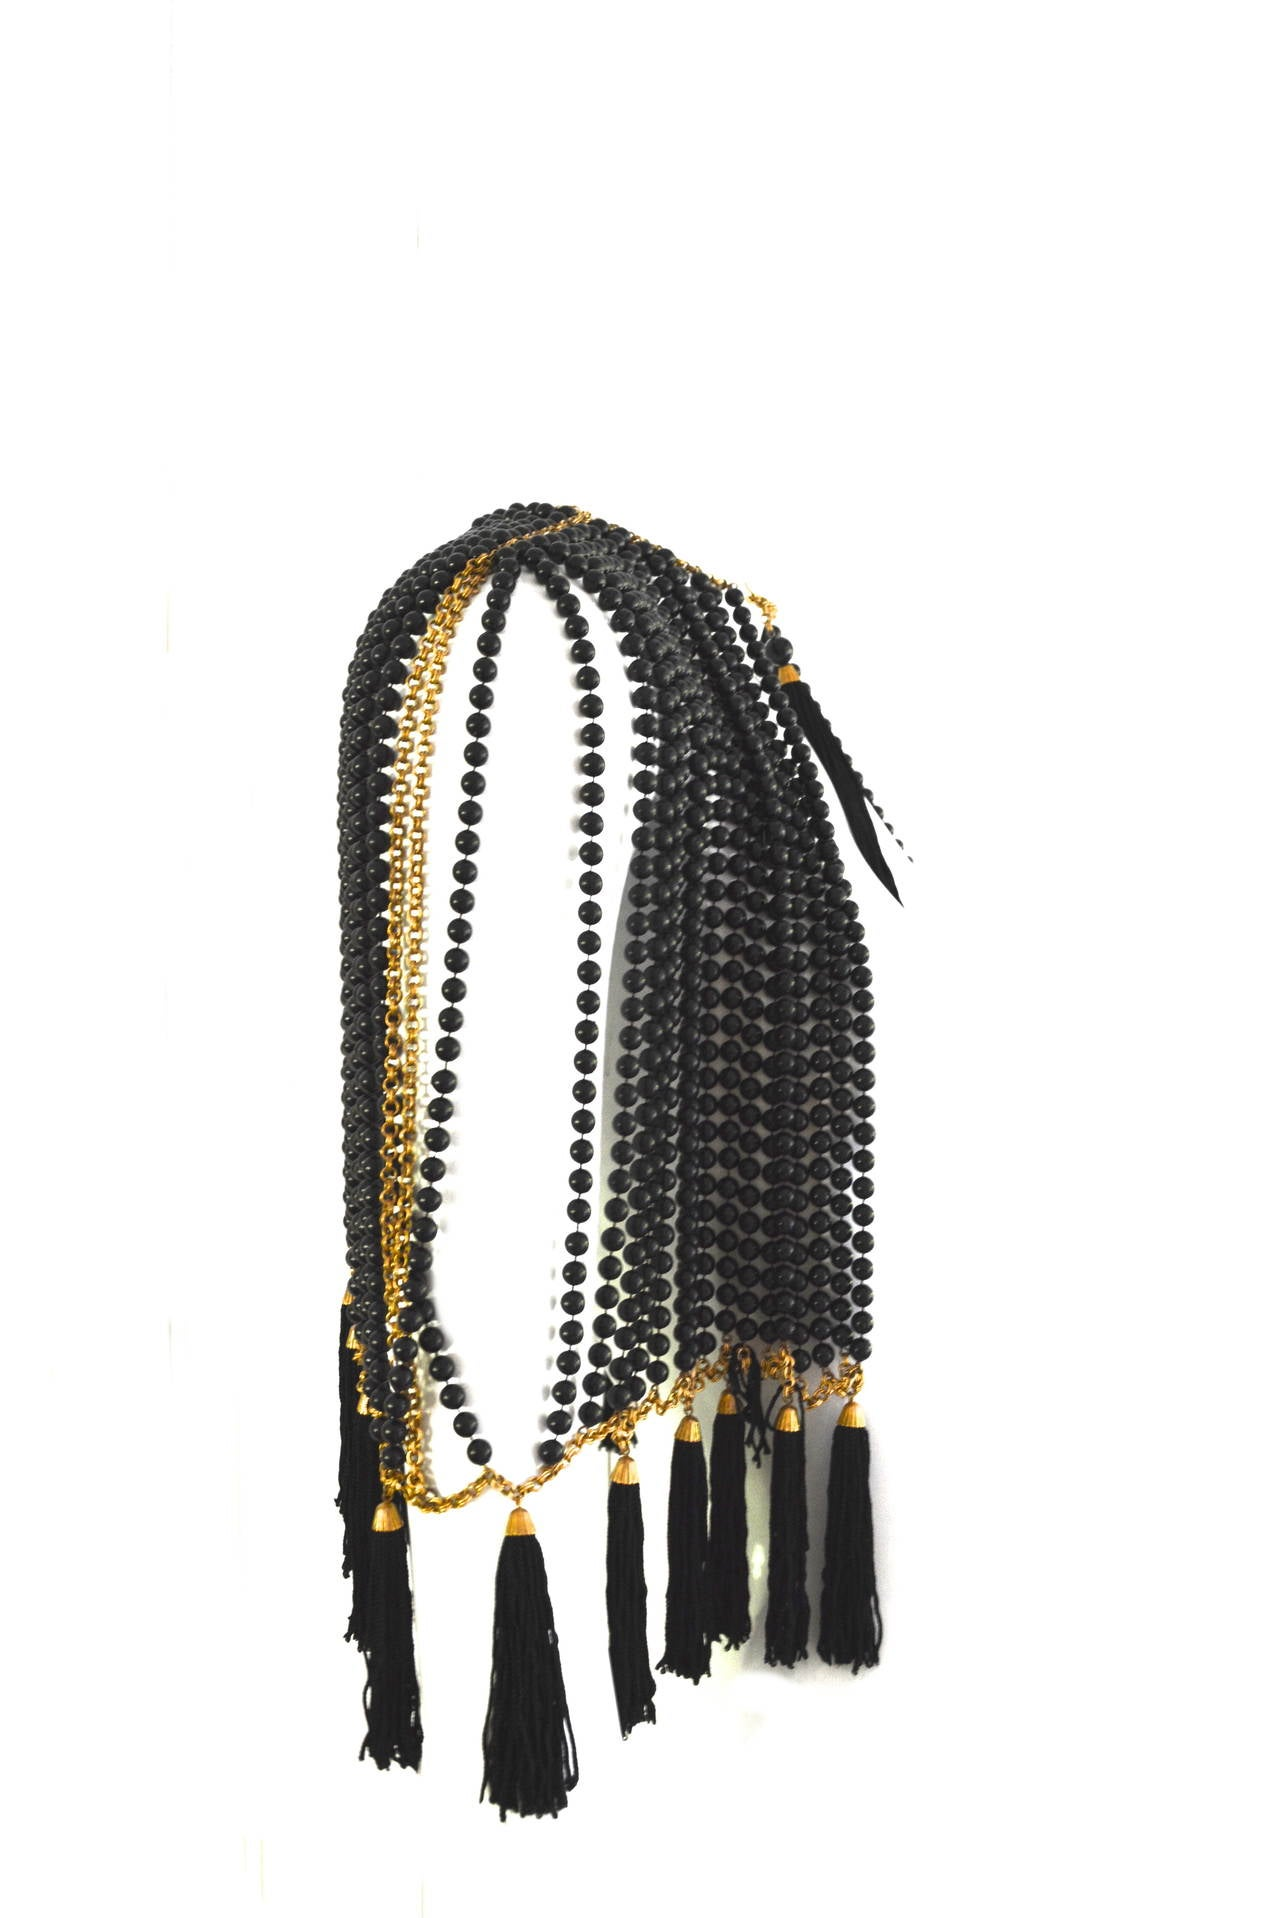 Bill Smith Richelieu Black Lucite Bead and Tassel Cape 2